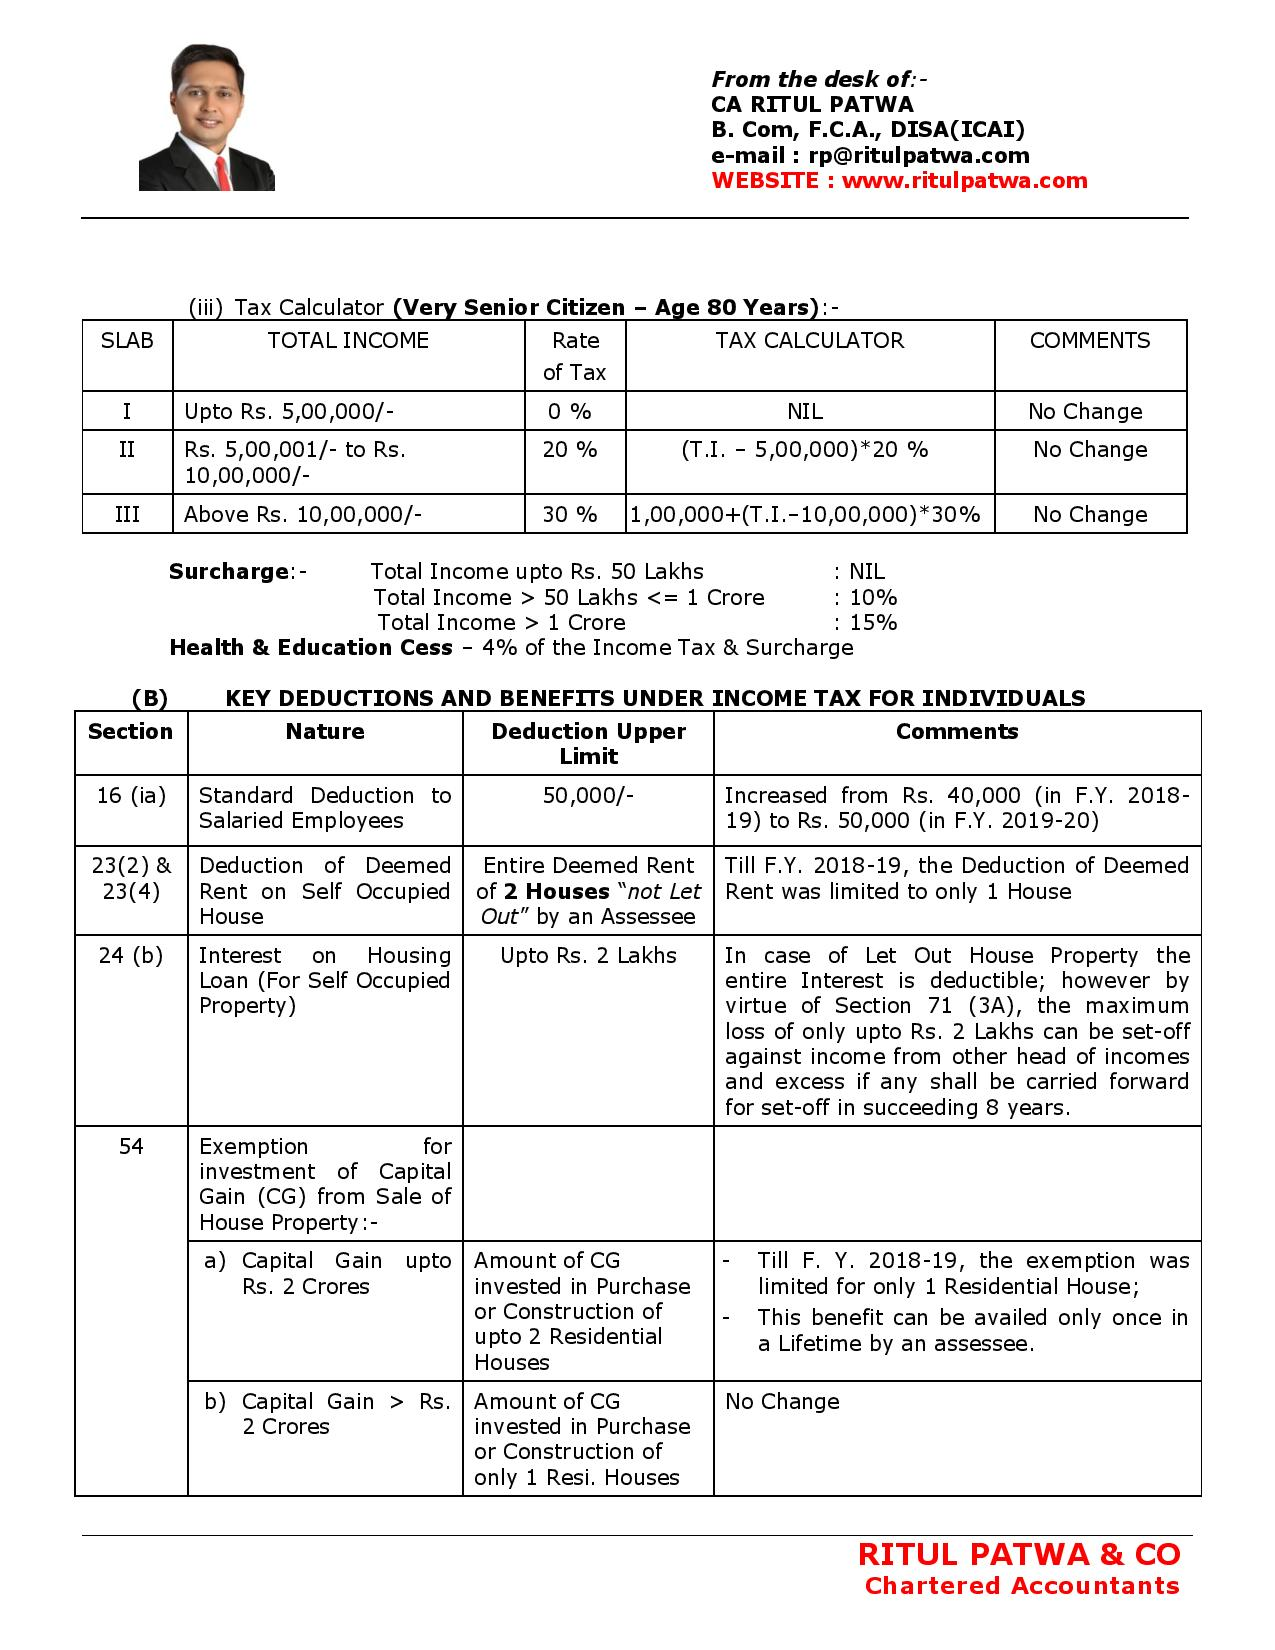 BUDGET 2019 - INCOME TAX RATE, DEDUCTION & PROVISIONS-page-002